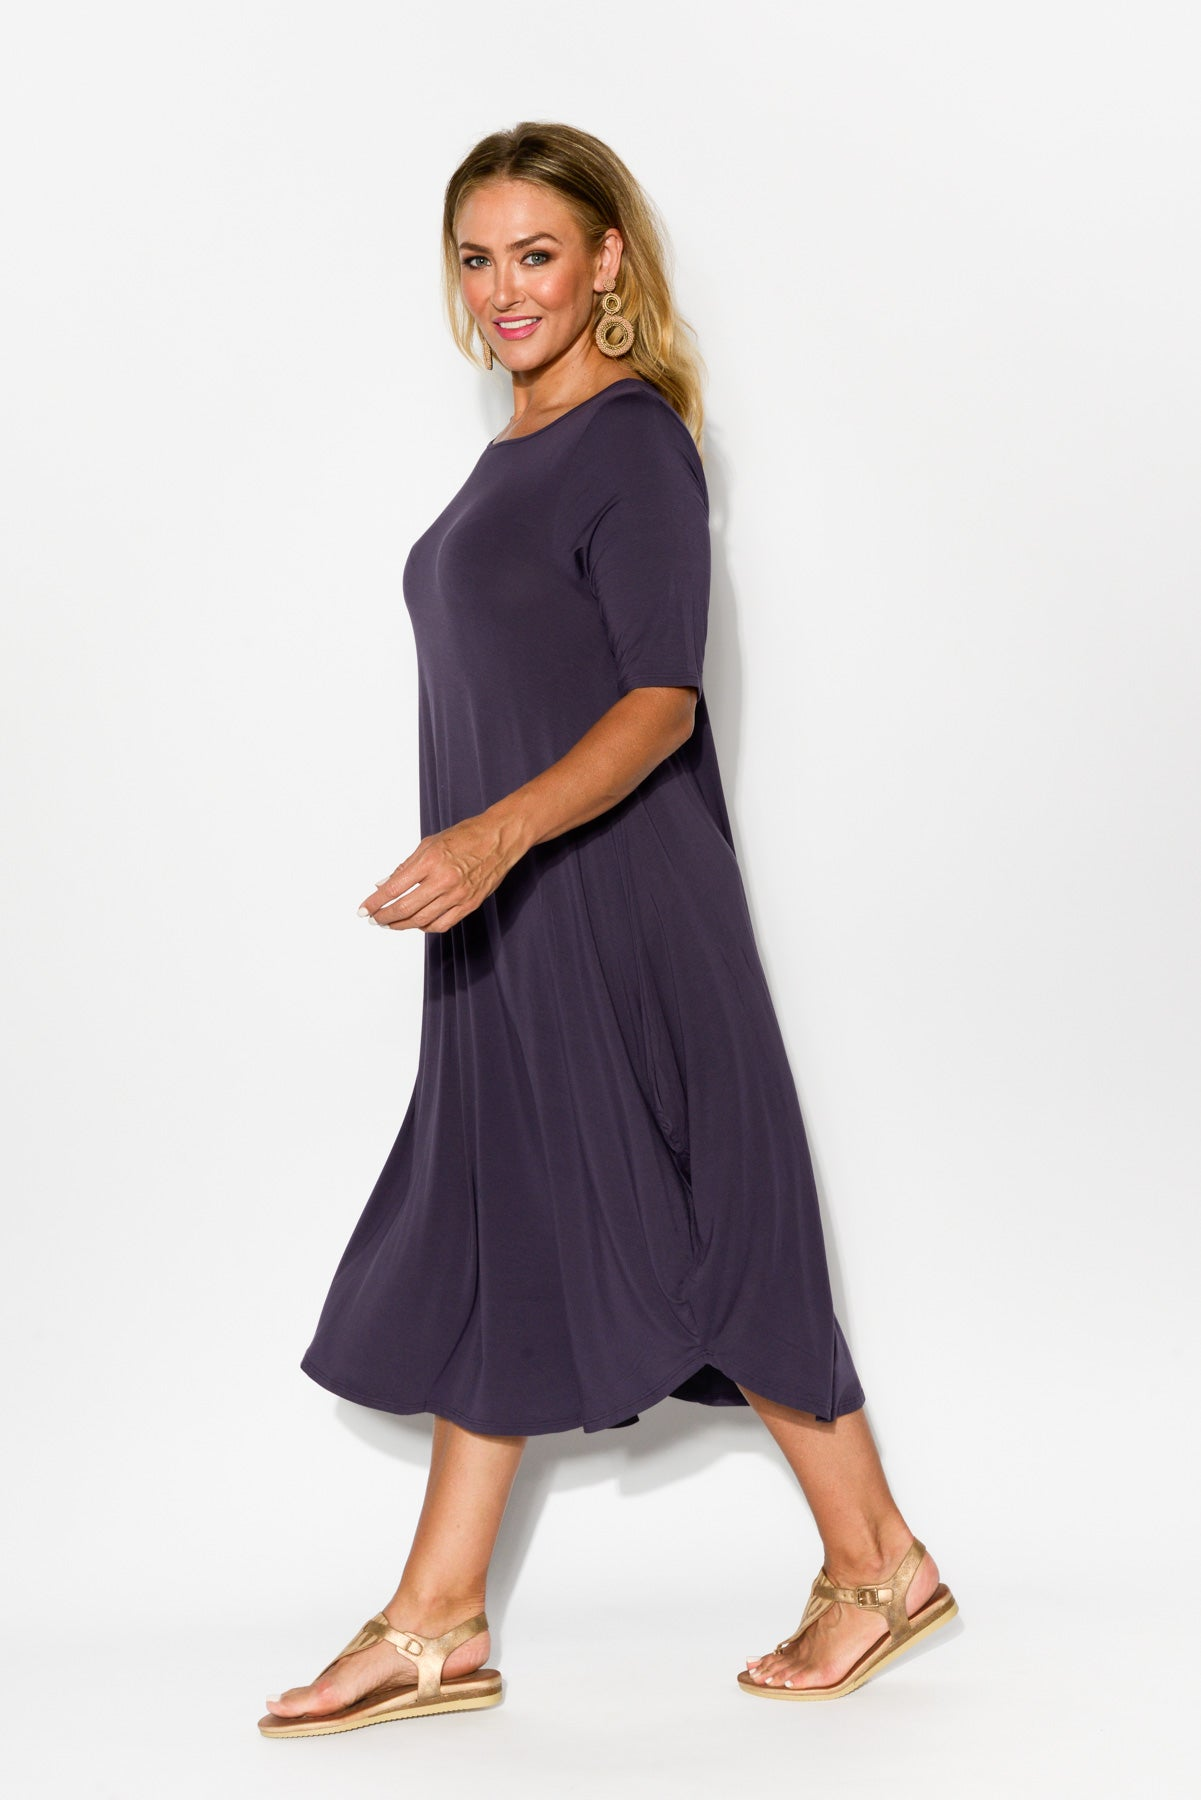 Purple Modal Tri Drape Dress - Blue Bungalow